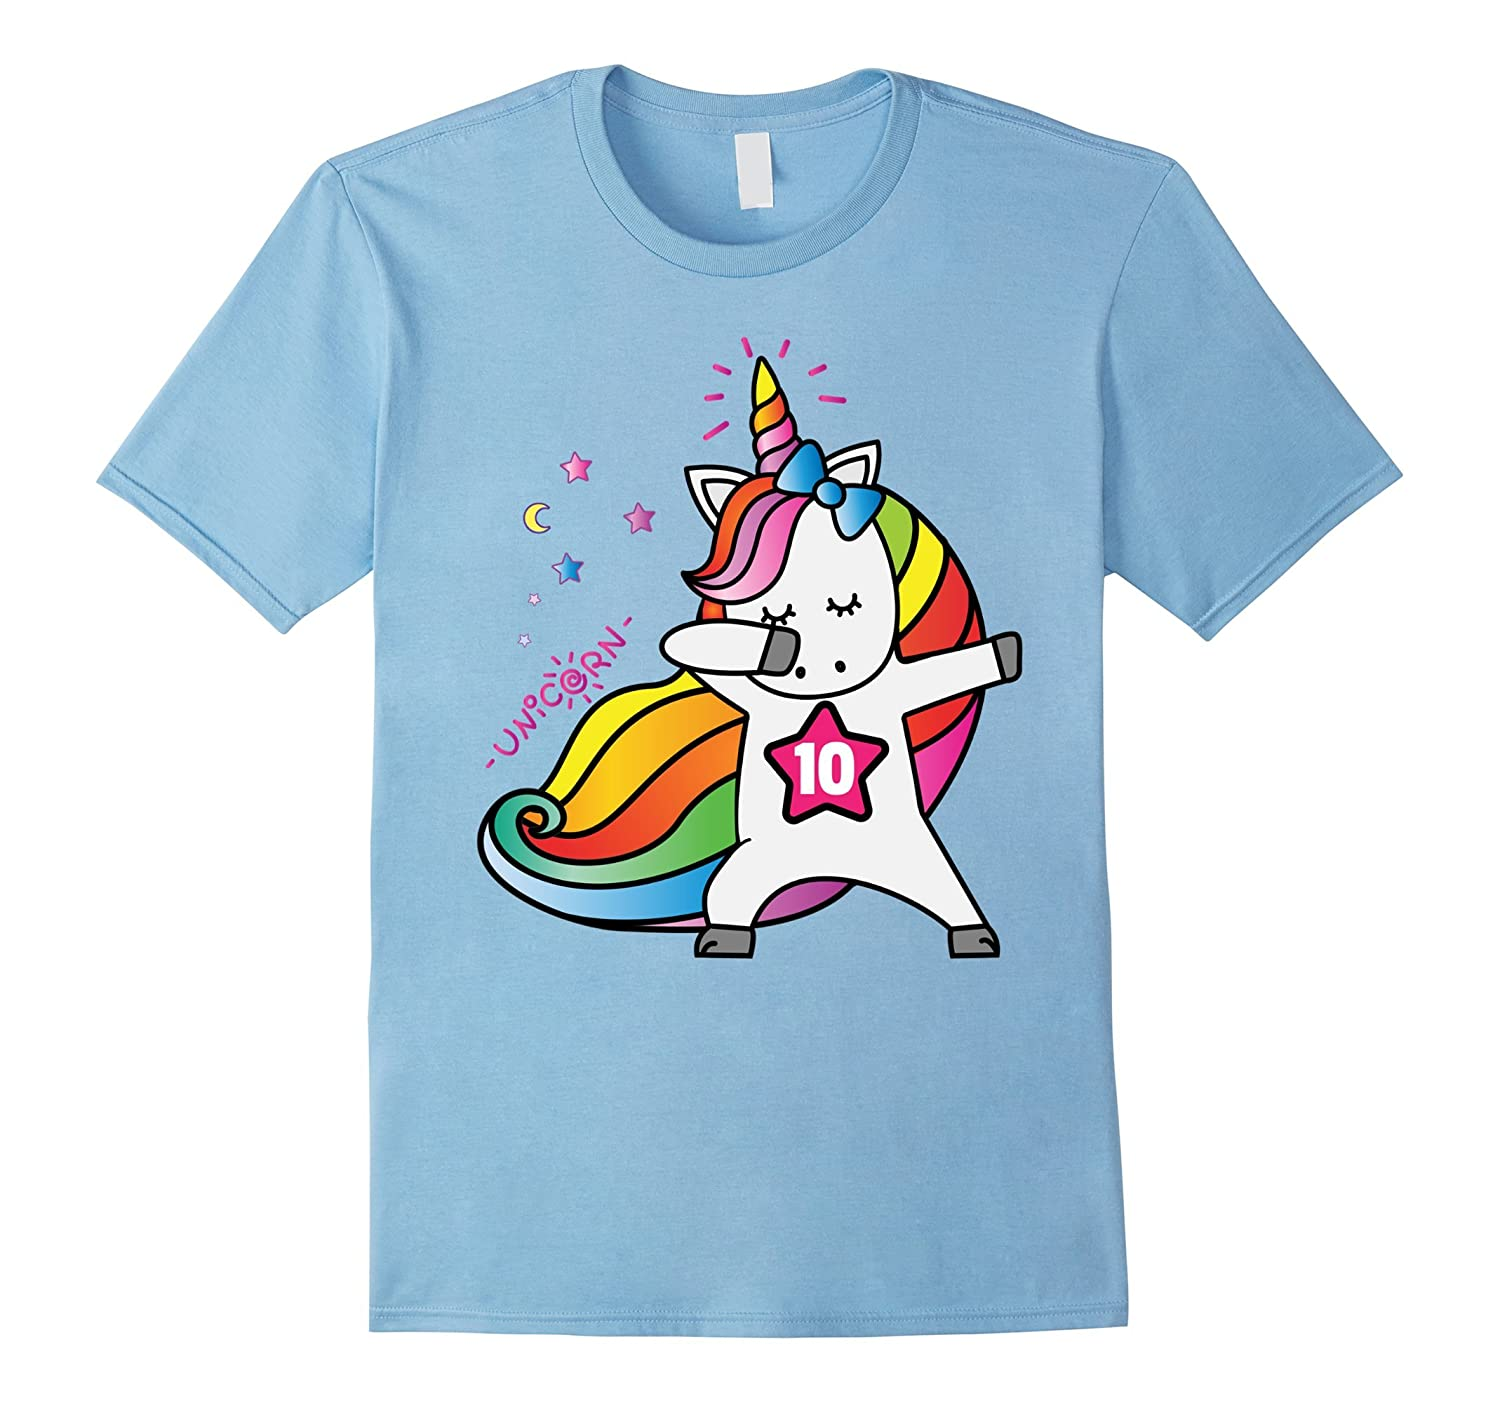 10th Birthday Shirt Girl 10 Unicorn T July Art